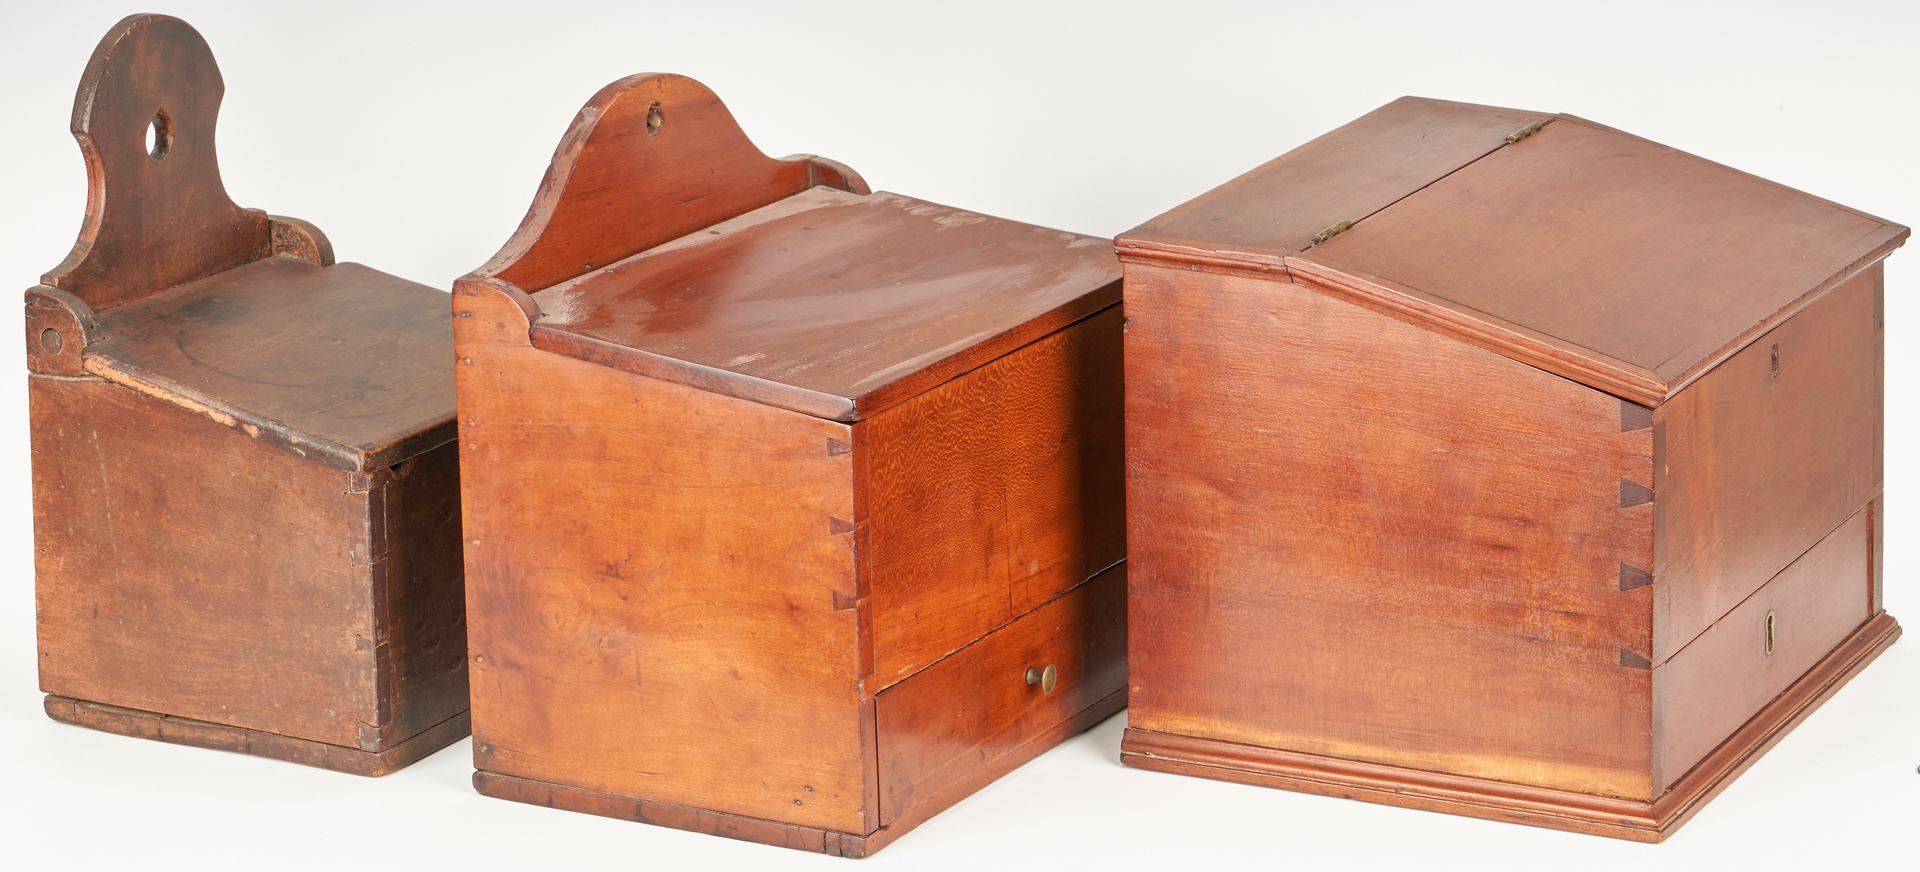 Lot 416: 3 American Storage Boxes, incl. Wall Boxes